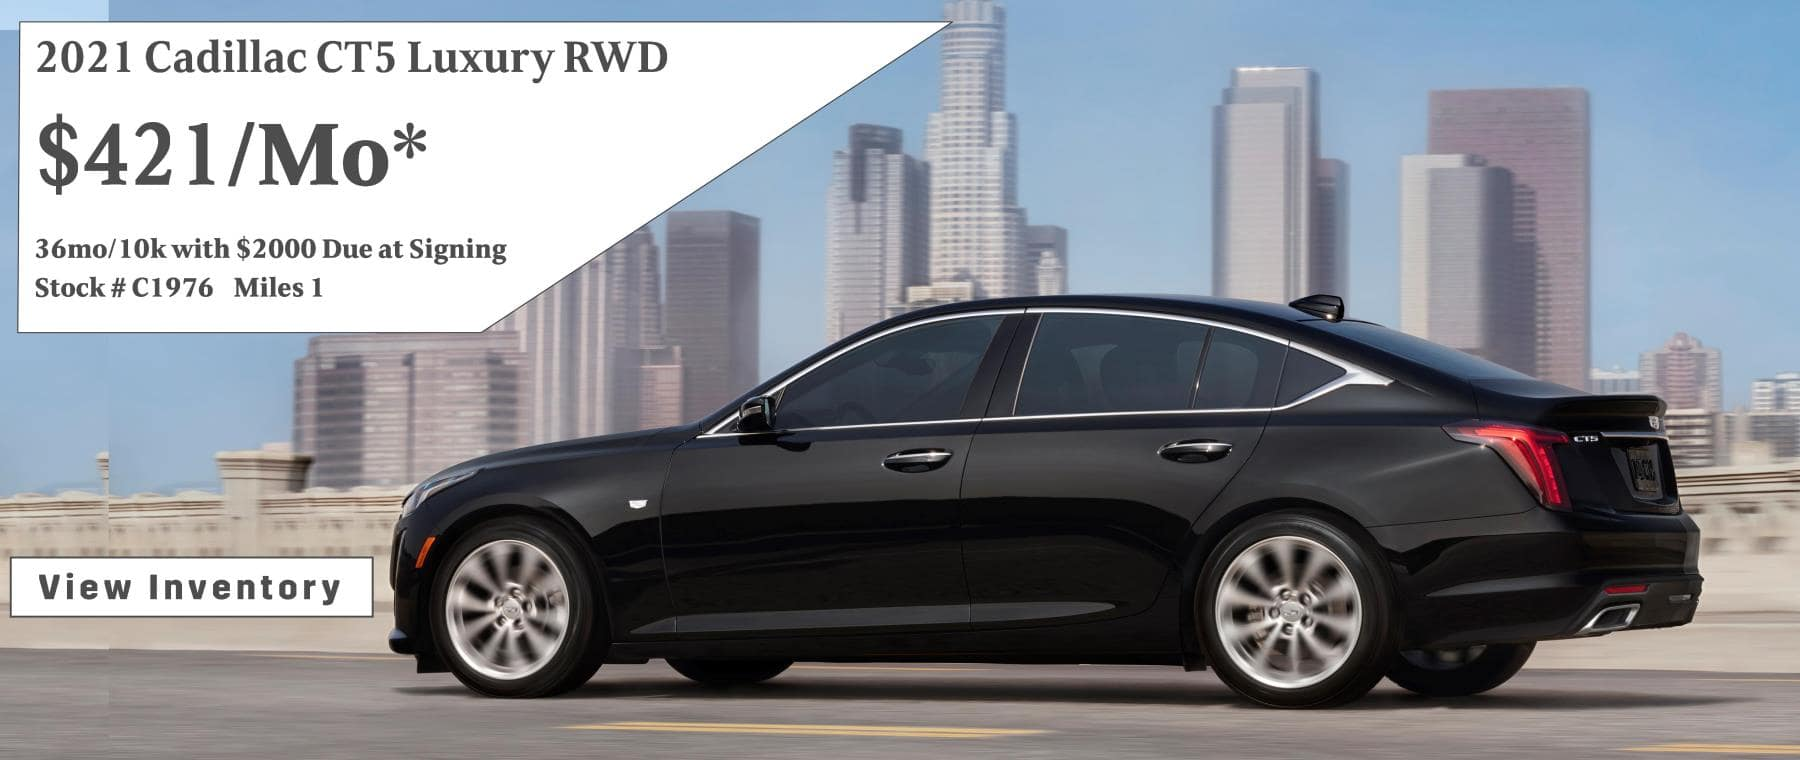 April Cadillac CT5 Lease Special $421/mo*